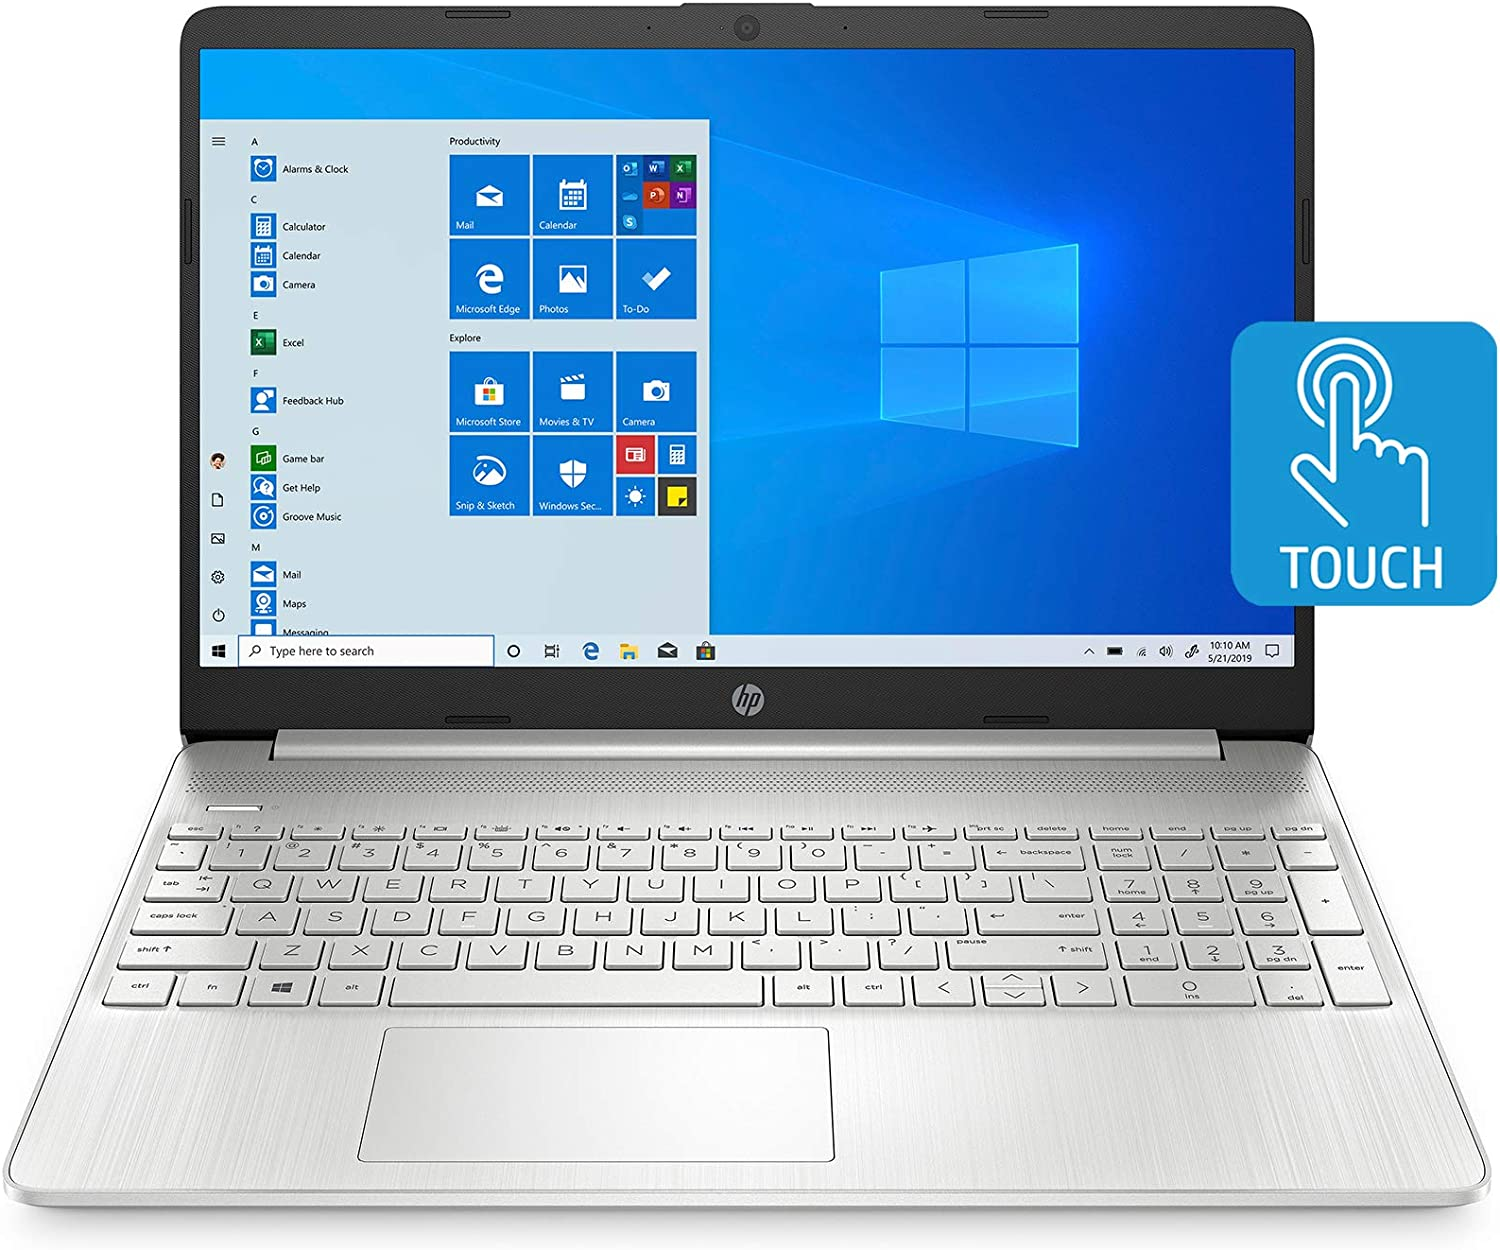 HP 15-inch Touchscreen Laptop, AMD Ryzen 3 3250U, 8 GB RAM, 256 GB SSD, Windows 10 Home in S Mode (15-ef1020nr, Natural Silver)